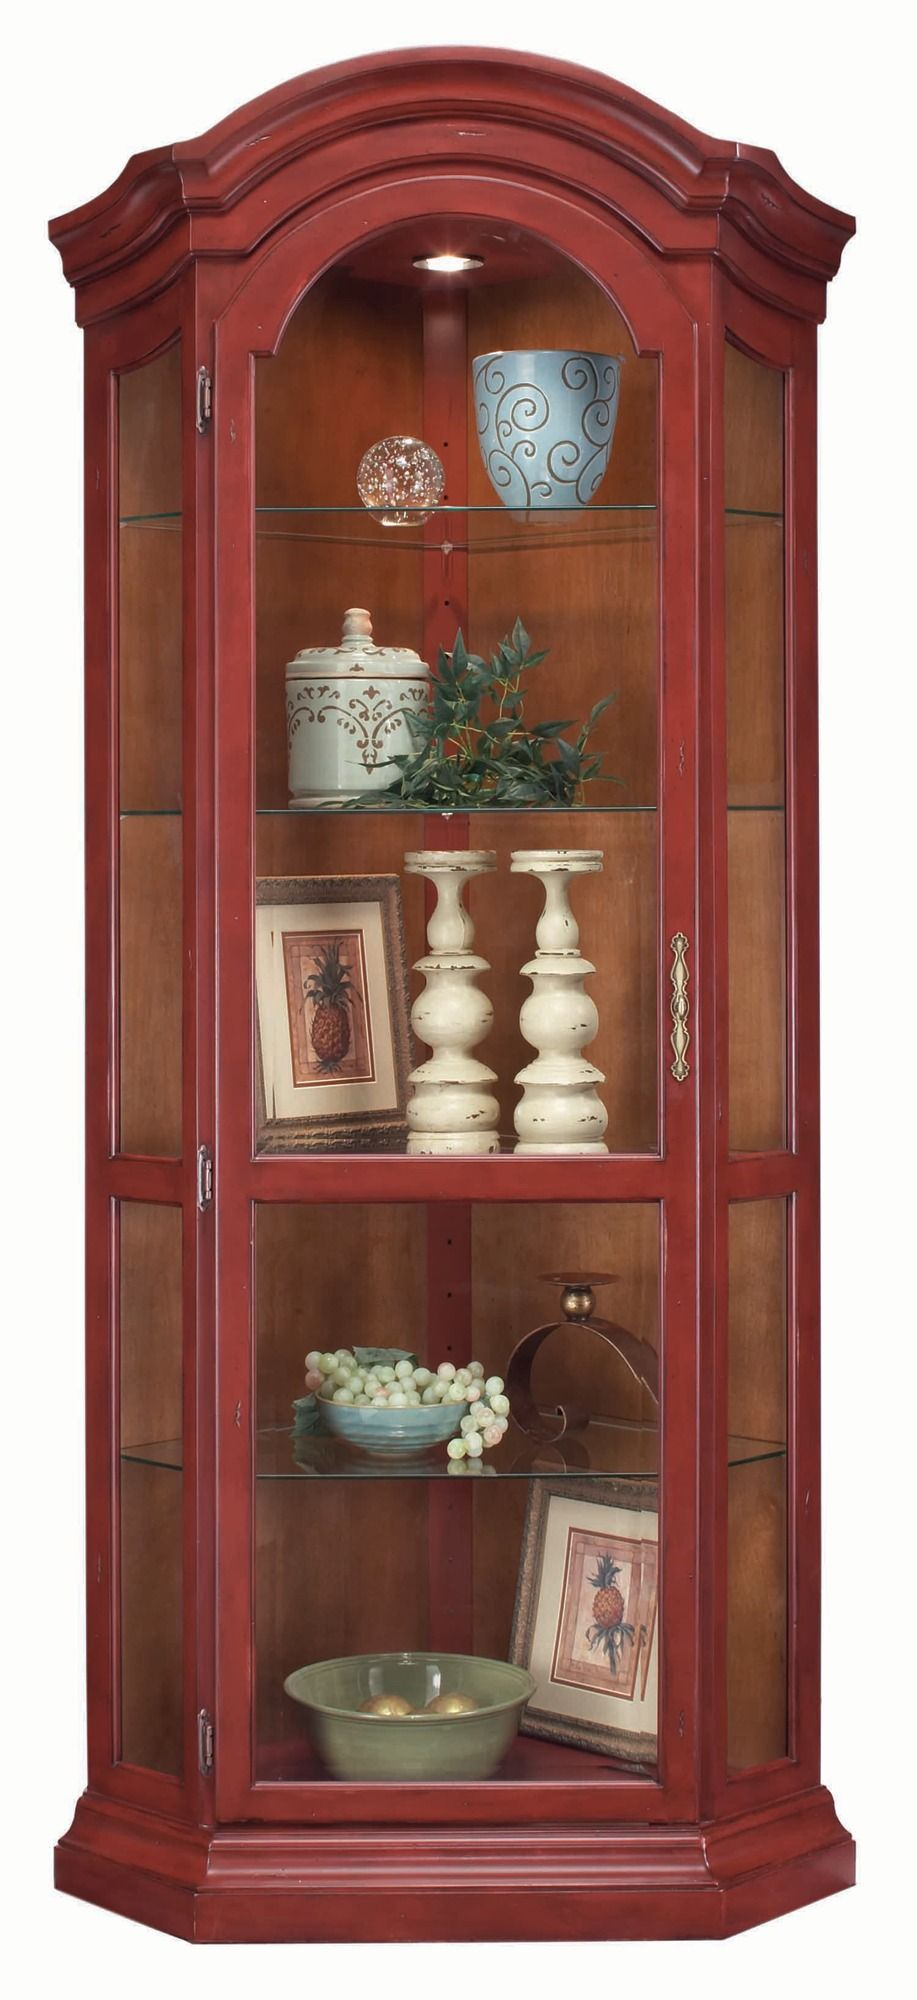 Merveilleux Panorama Corner Display Cabinet In Red | Philip Reinisch | Home Gallery  Stores